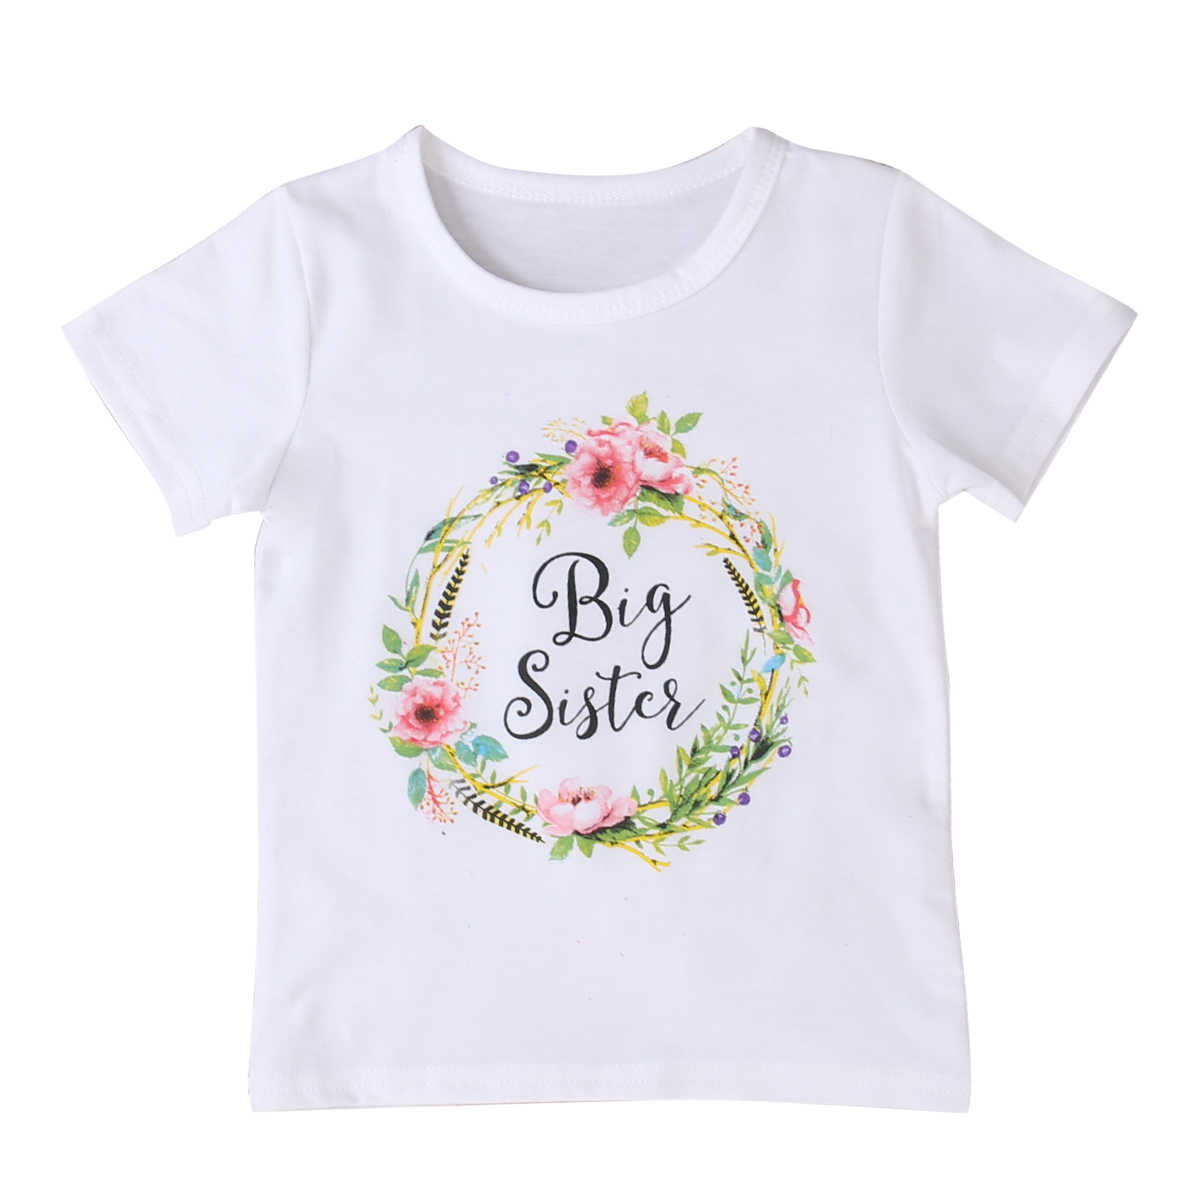 Pudcooco Baby Kid Girl Little Big Sister Cotton Clothes Jumpsuit Romper Outfits T Shirt New Hot Fashion